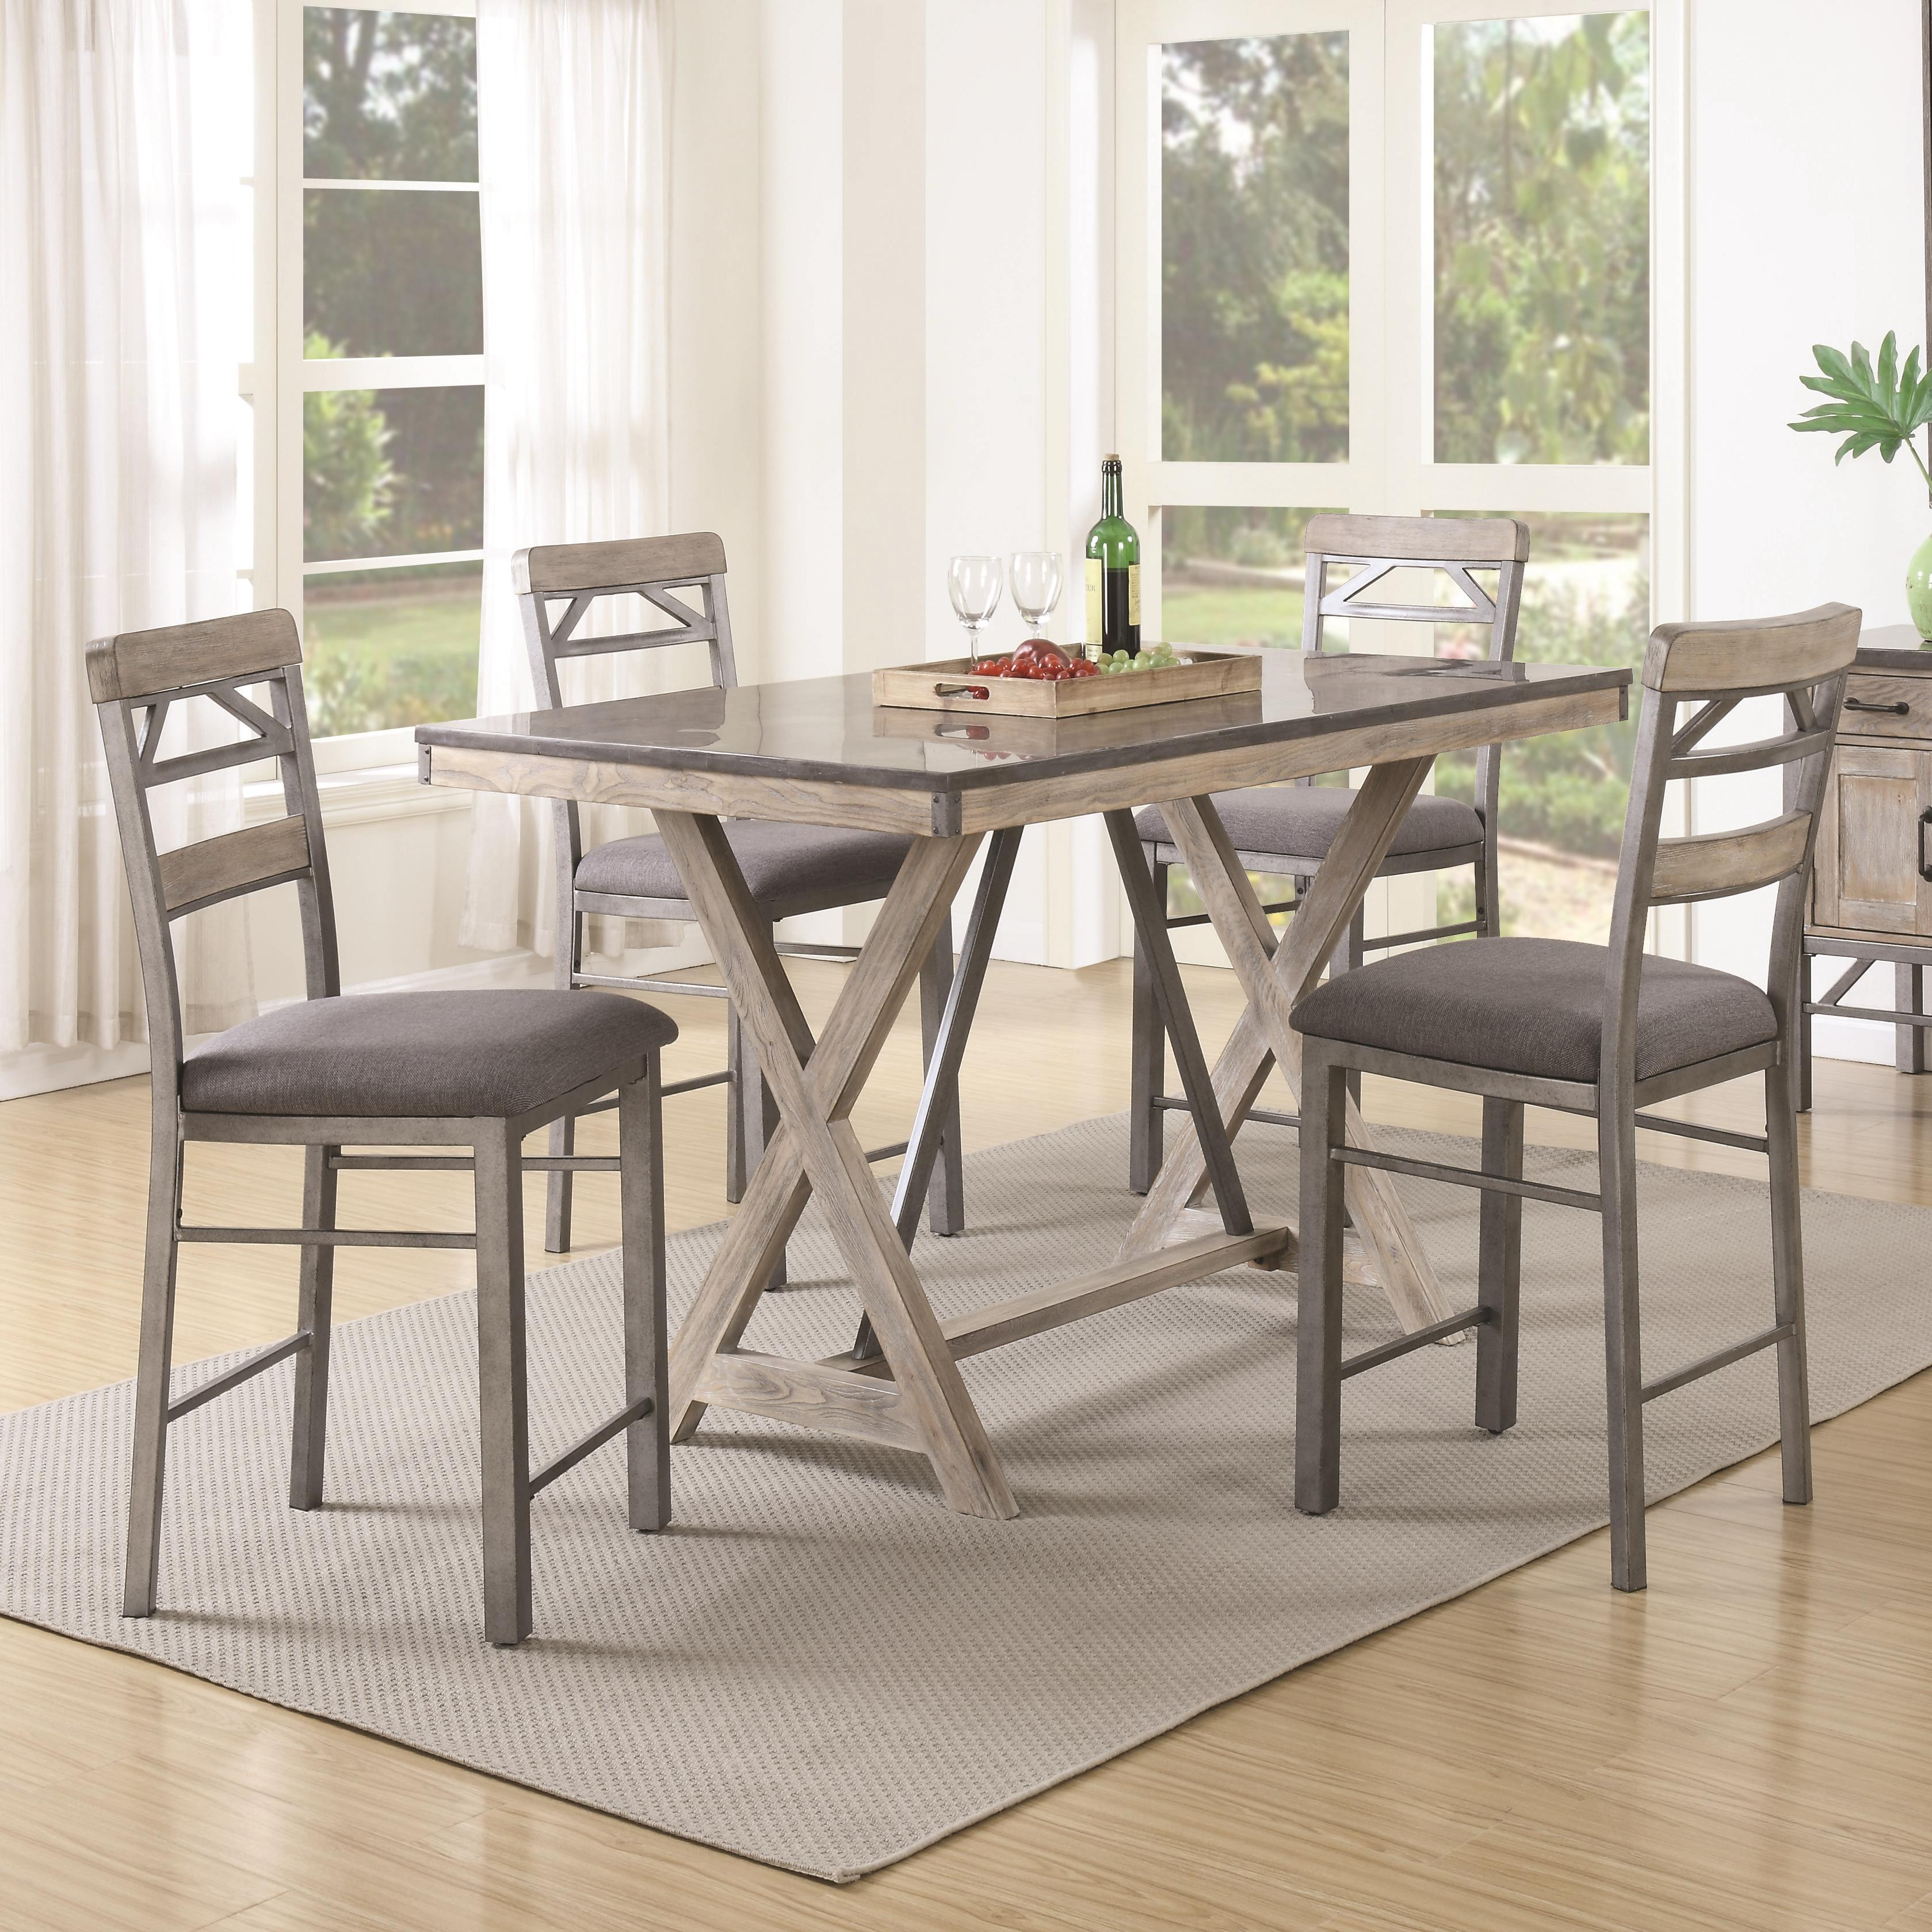 Coaster Edmonton 5 Piece Counter Height Table & Chair Set - Item Number: 106328+4x106329